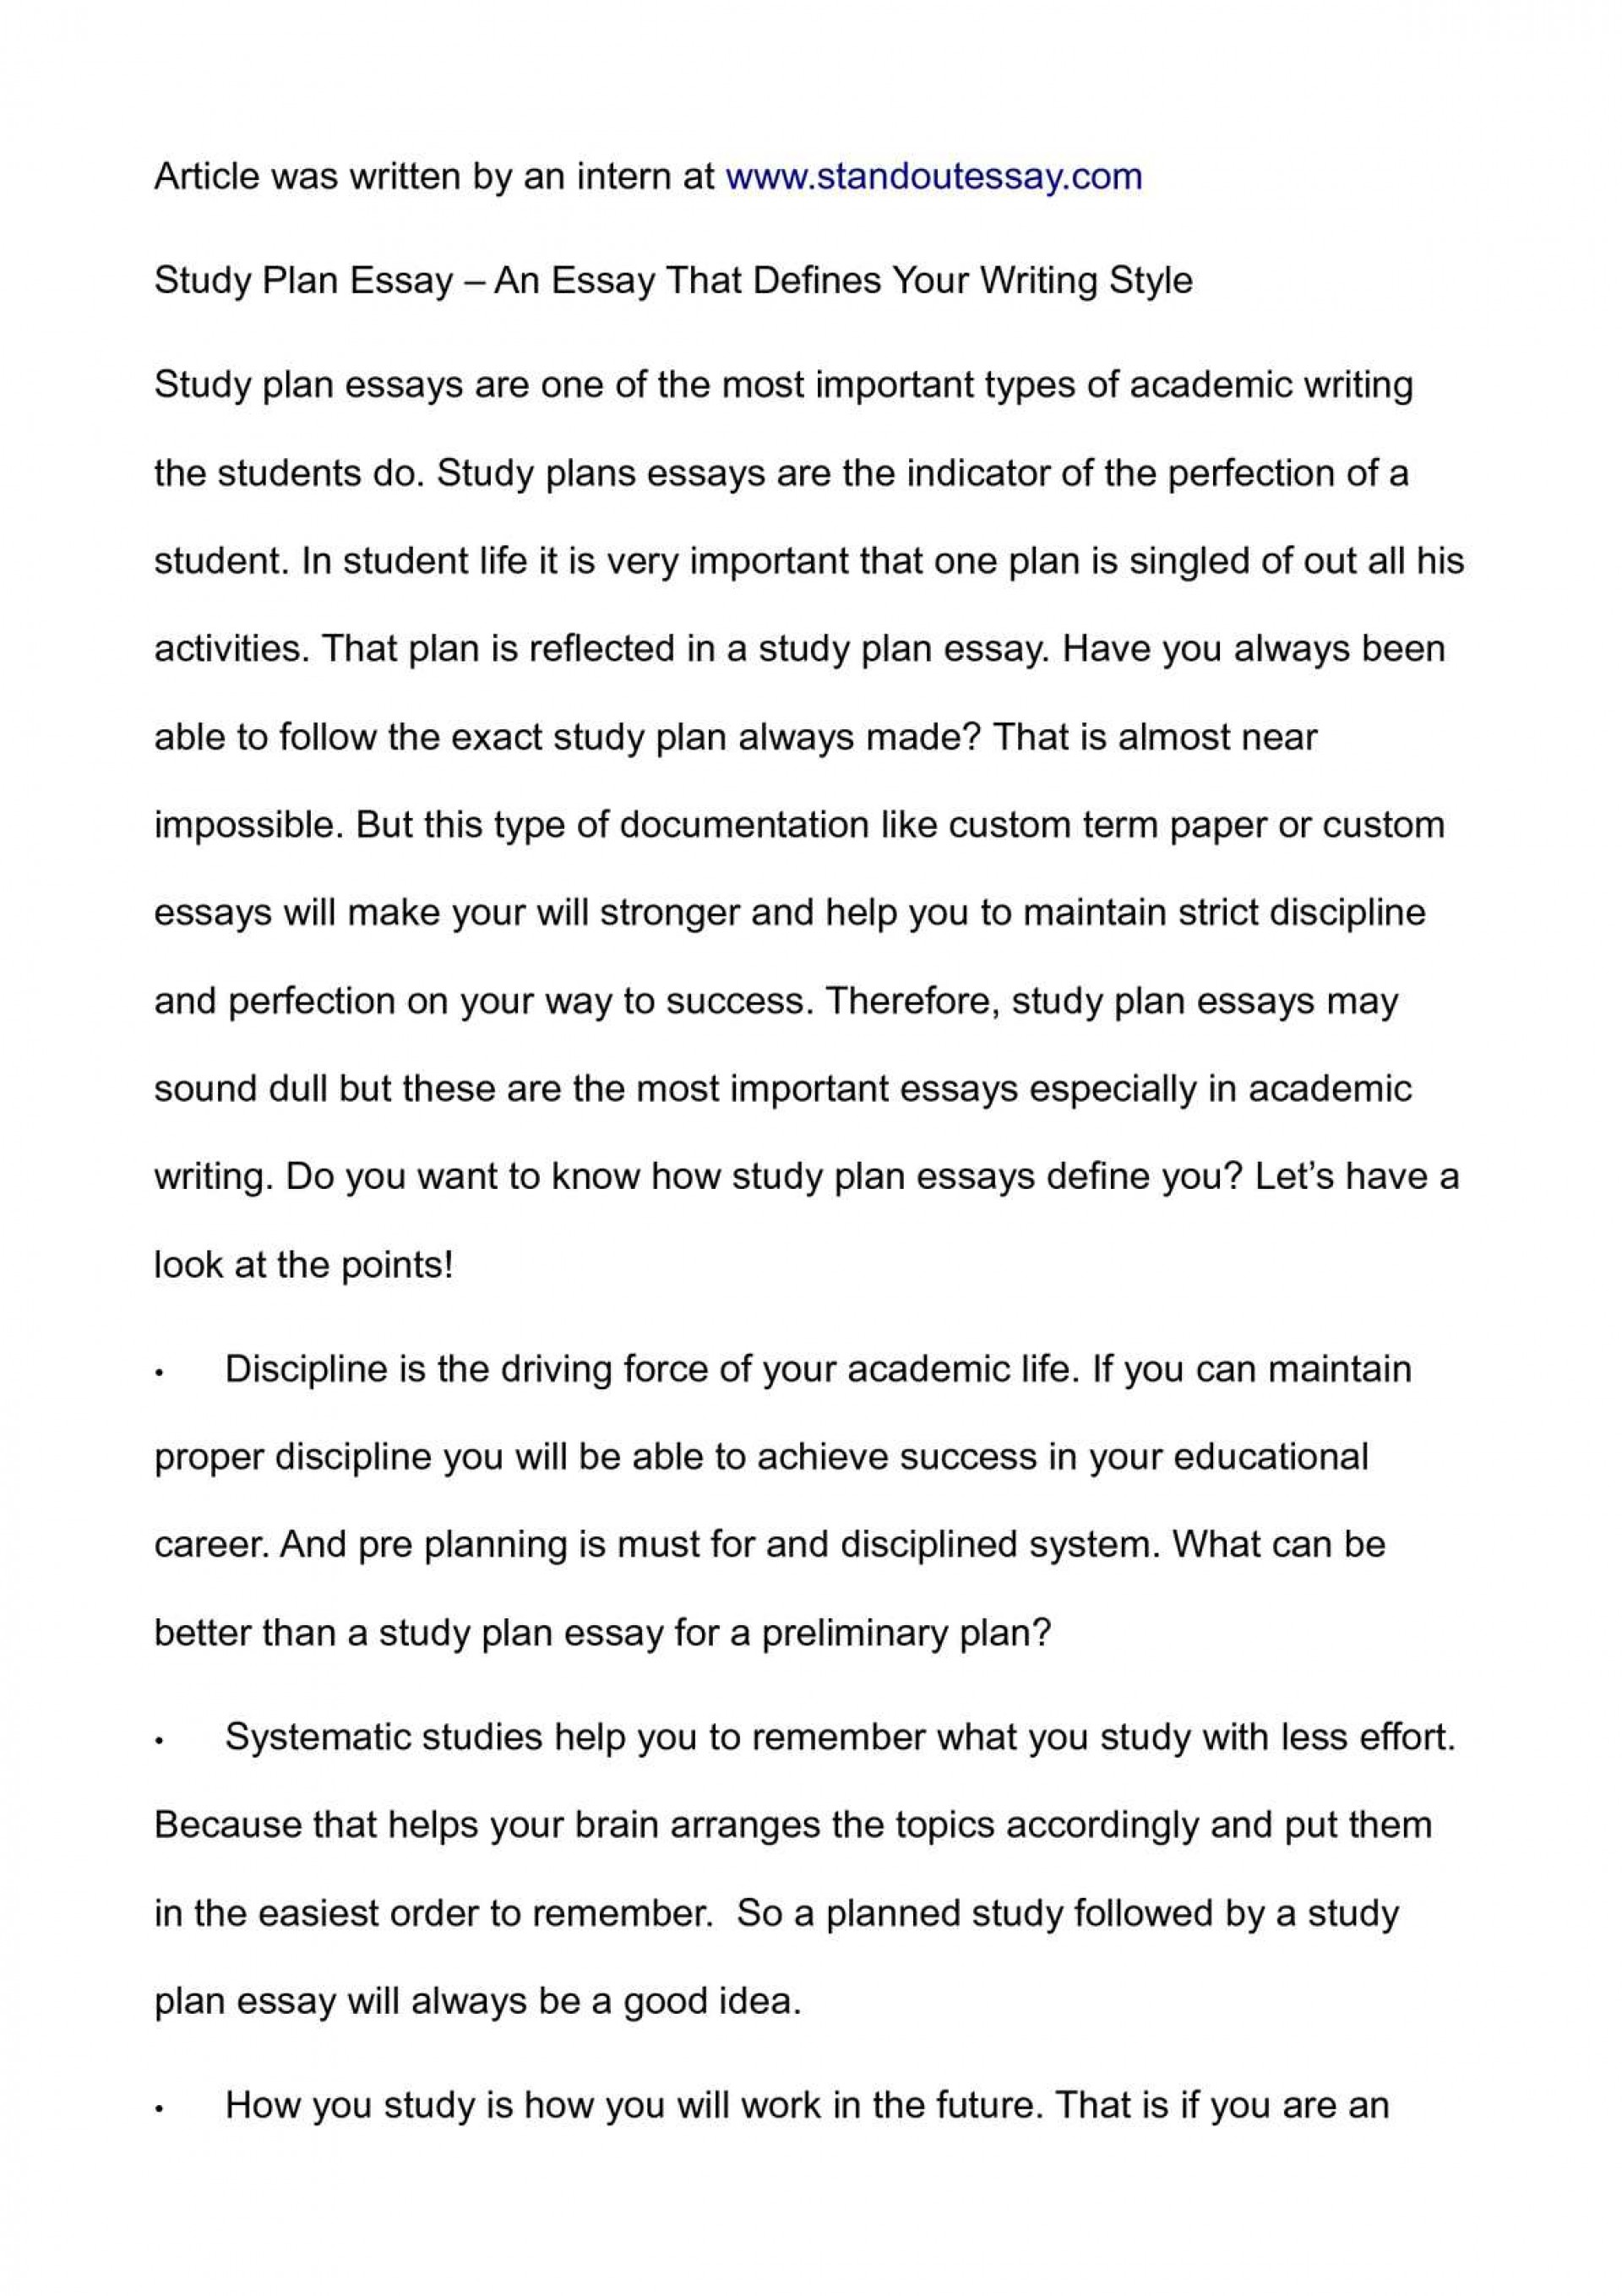 004 Definition Of Success Essay P1 Awesome Outline 1920